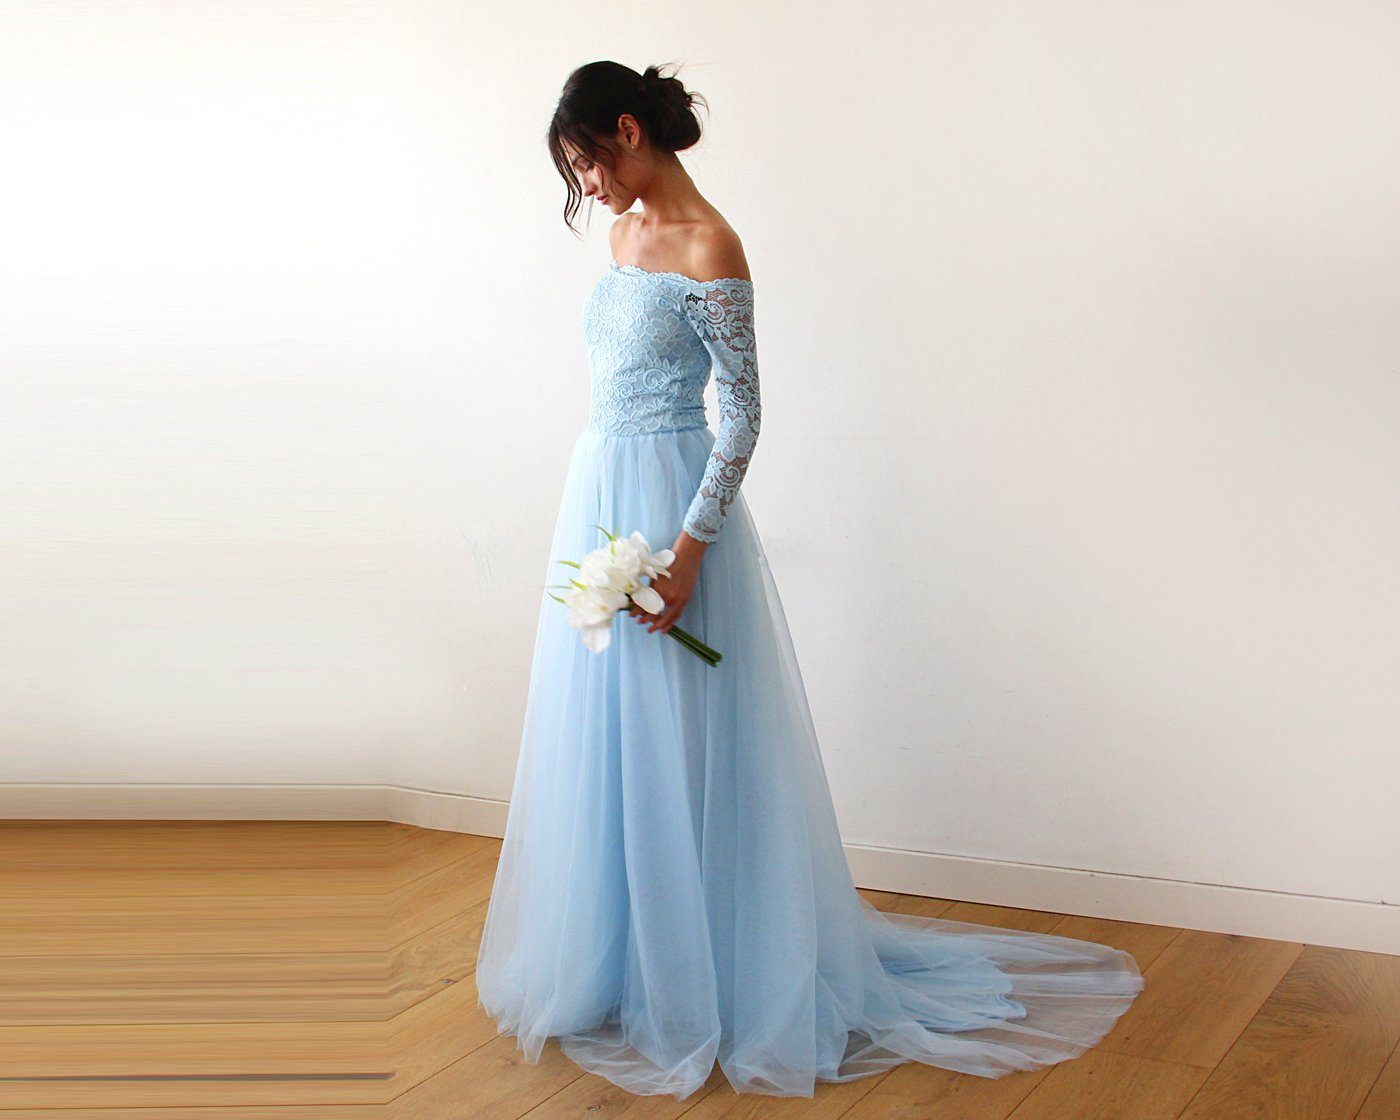 Light blue  Off-The-Shoulder Lace and Tulle Train Wedding Gown 1162 - Blushfashion